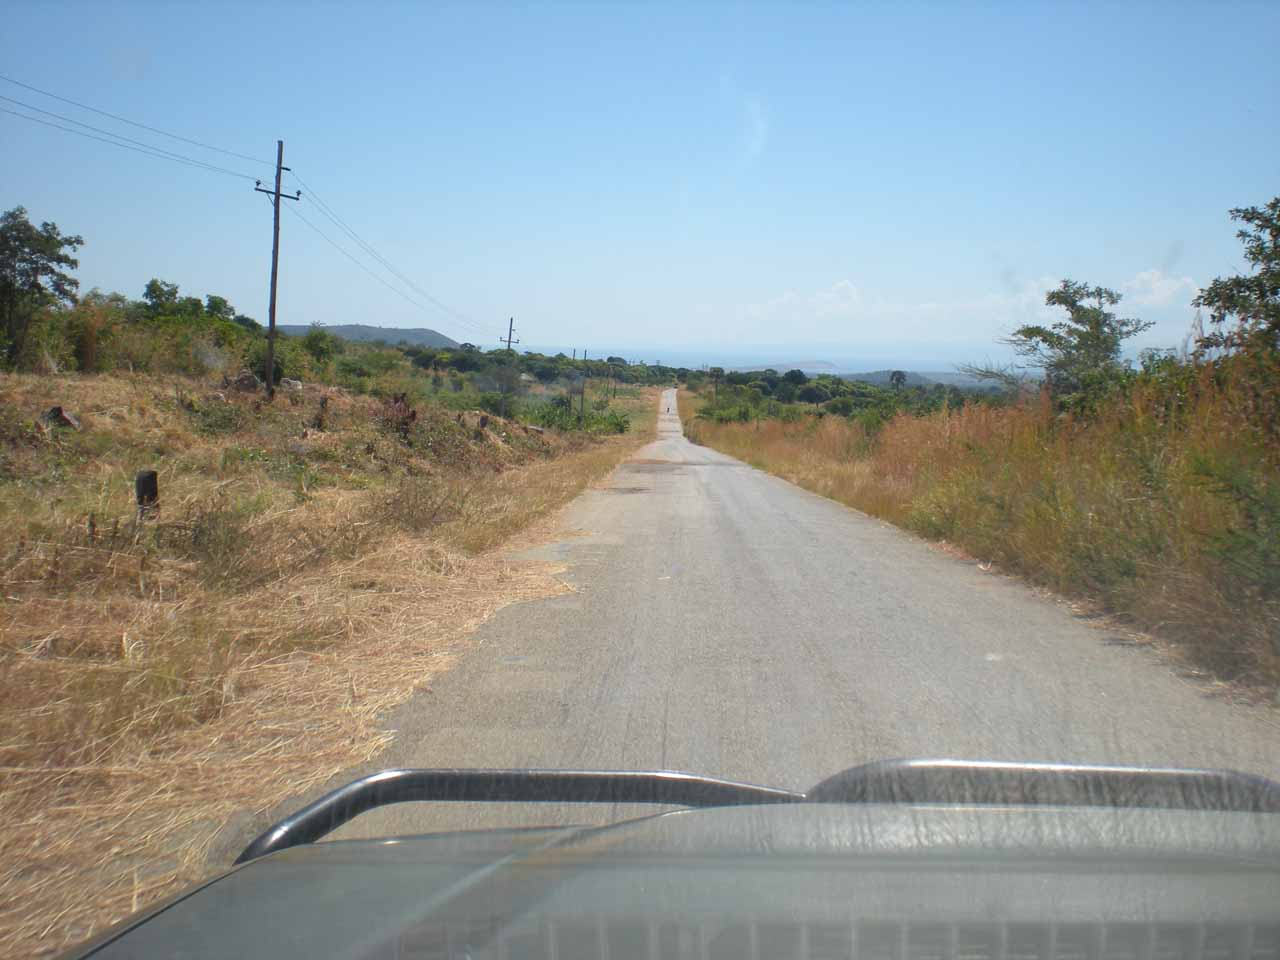 The road to Mpulungu